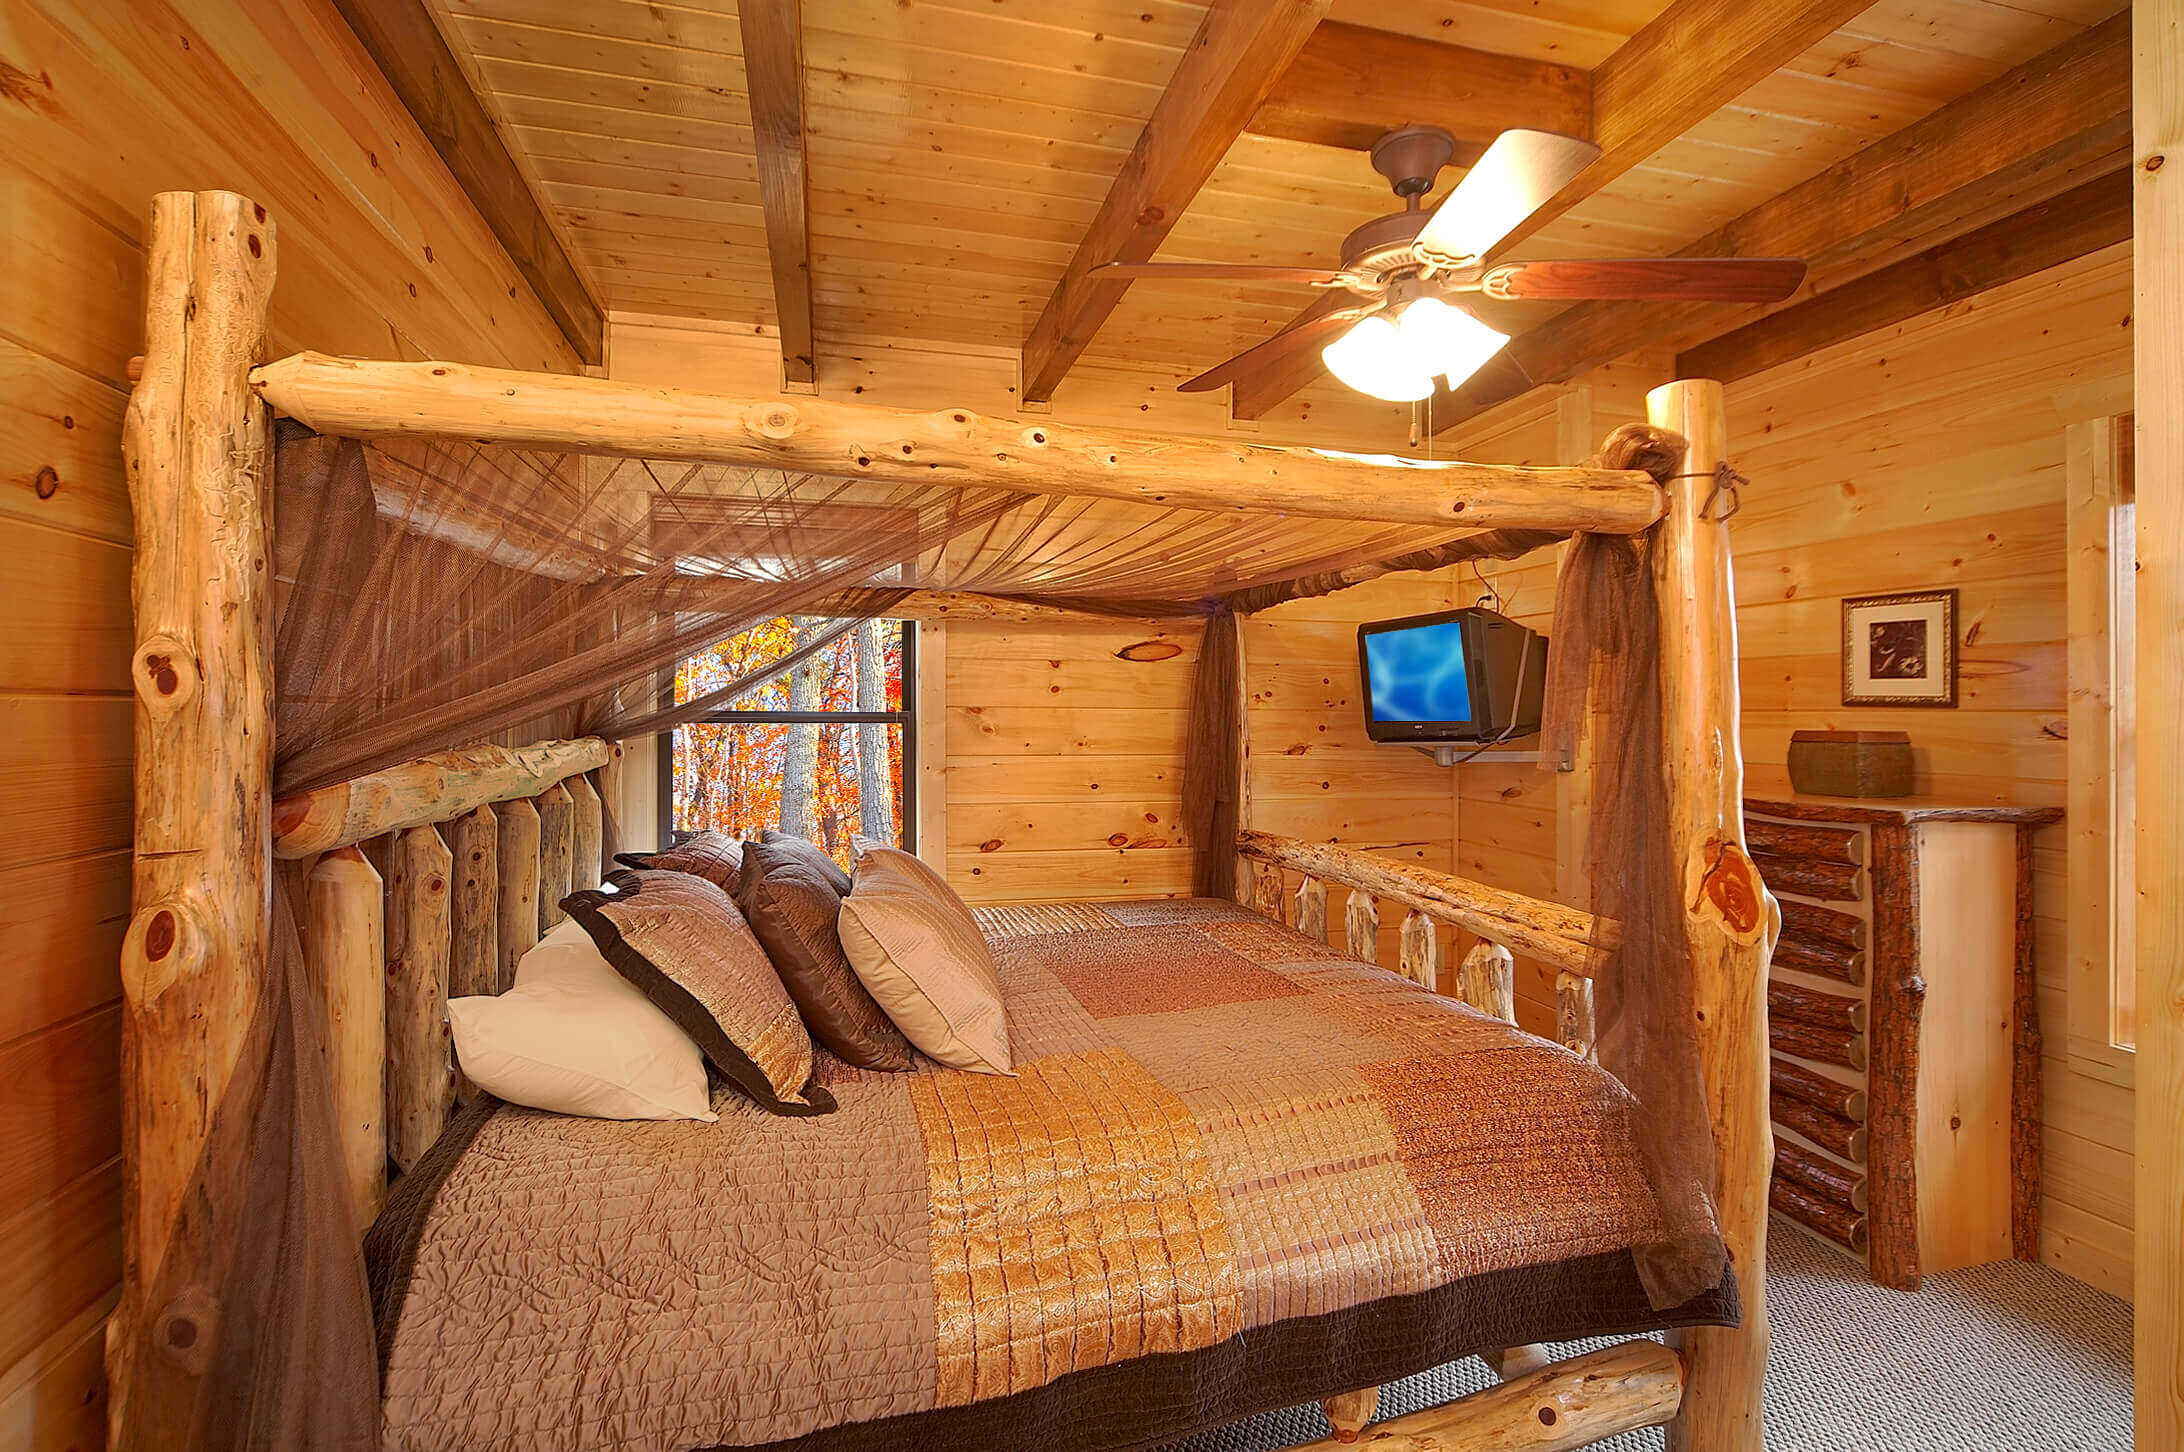 Grin and bear it 2 bedroom romantic cabin elk springs for Romantic big bear cabins